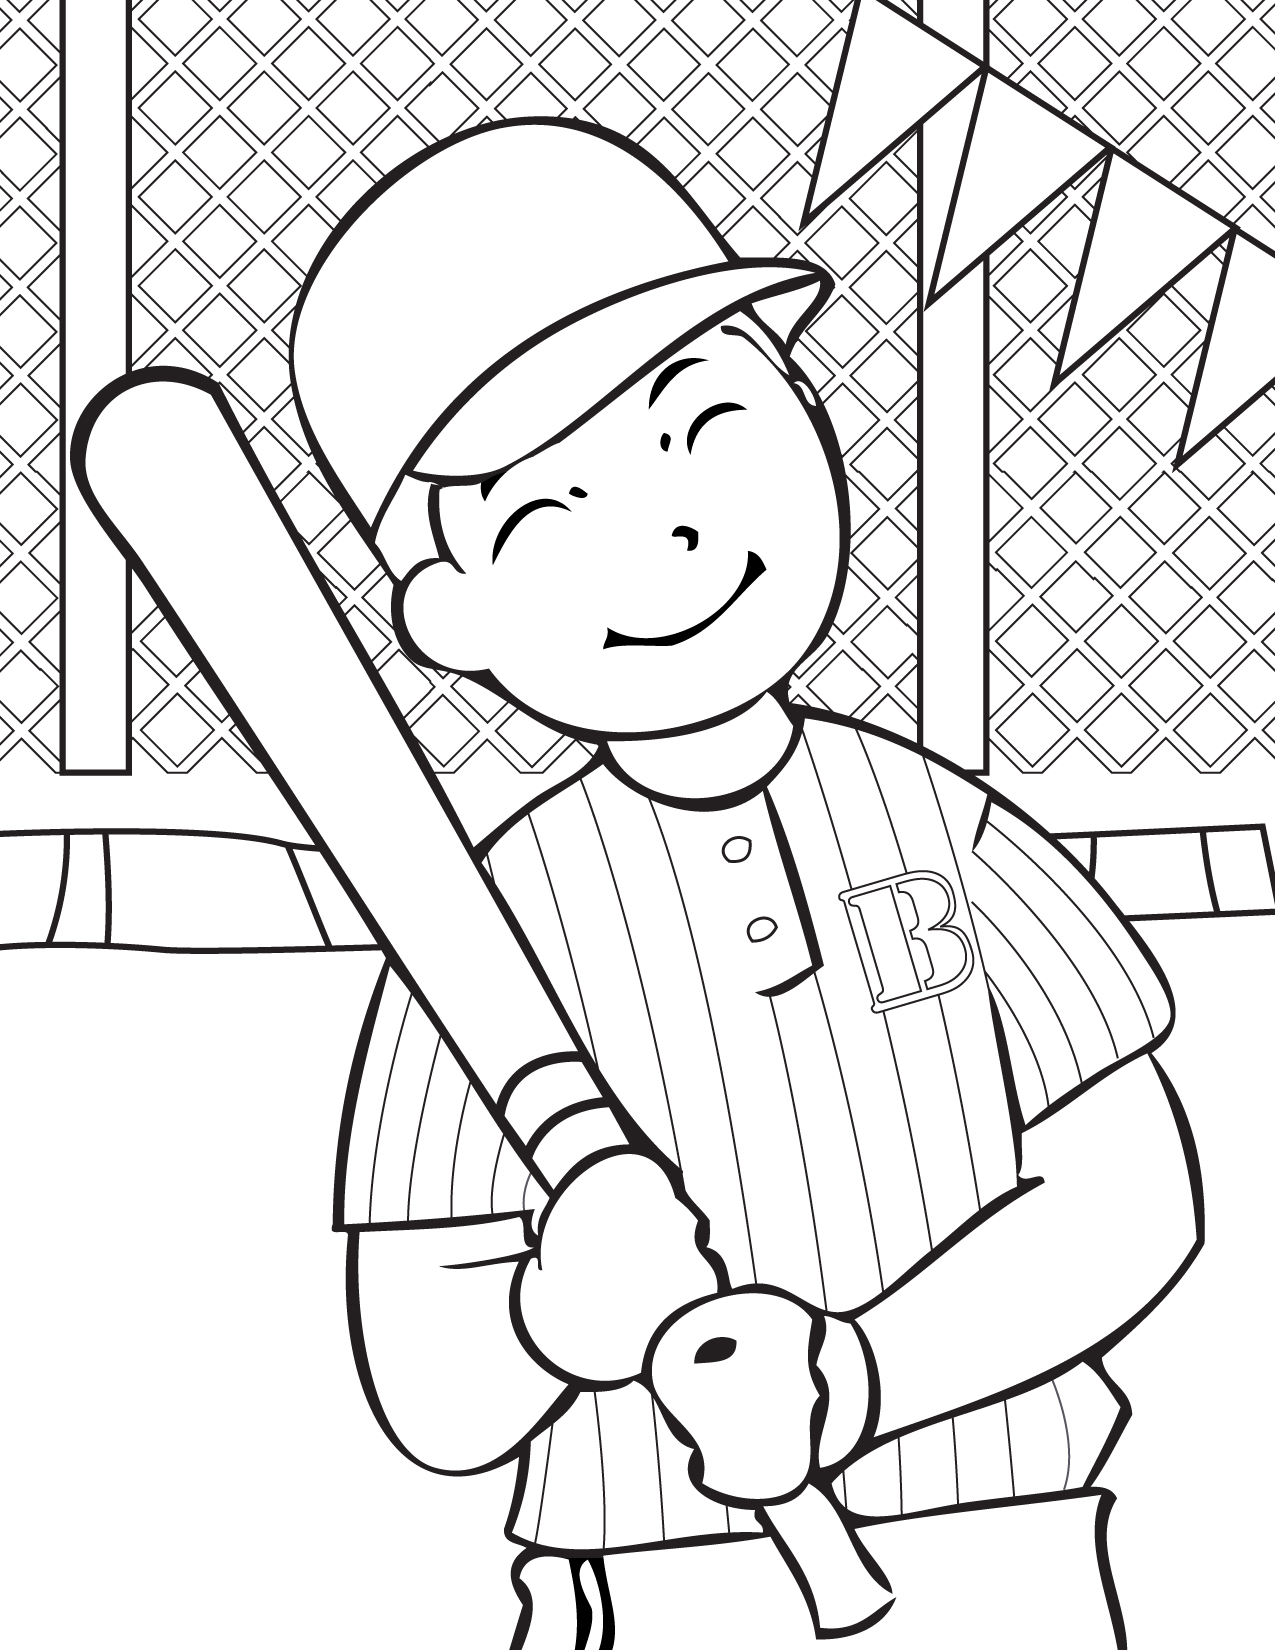 Free printable baseball coloring pages for kids best for Ten coloring page